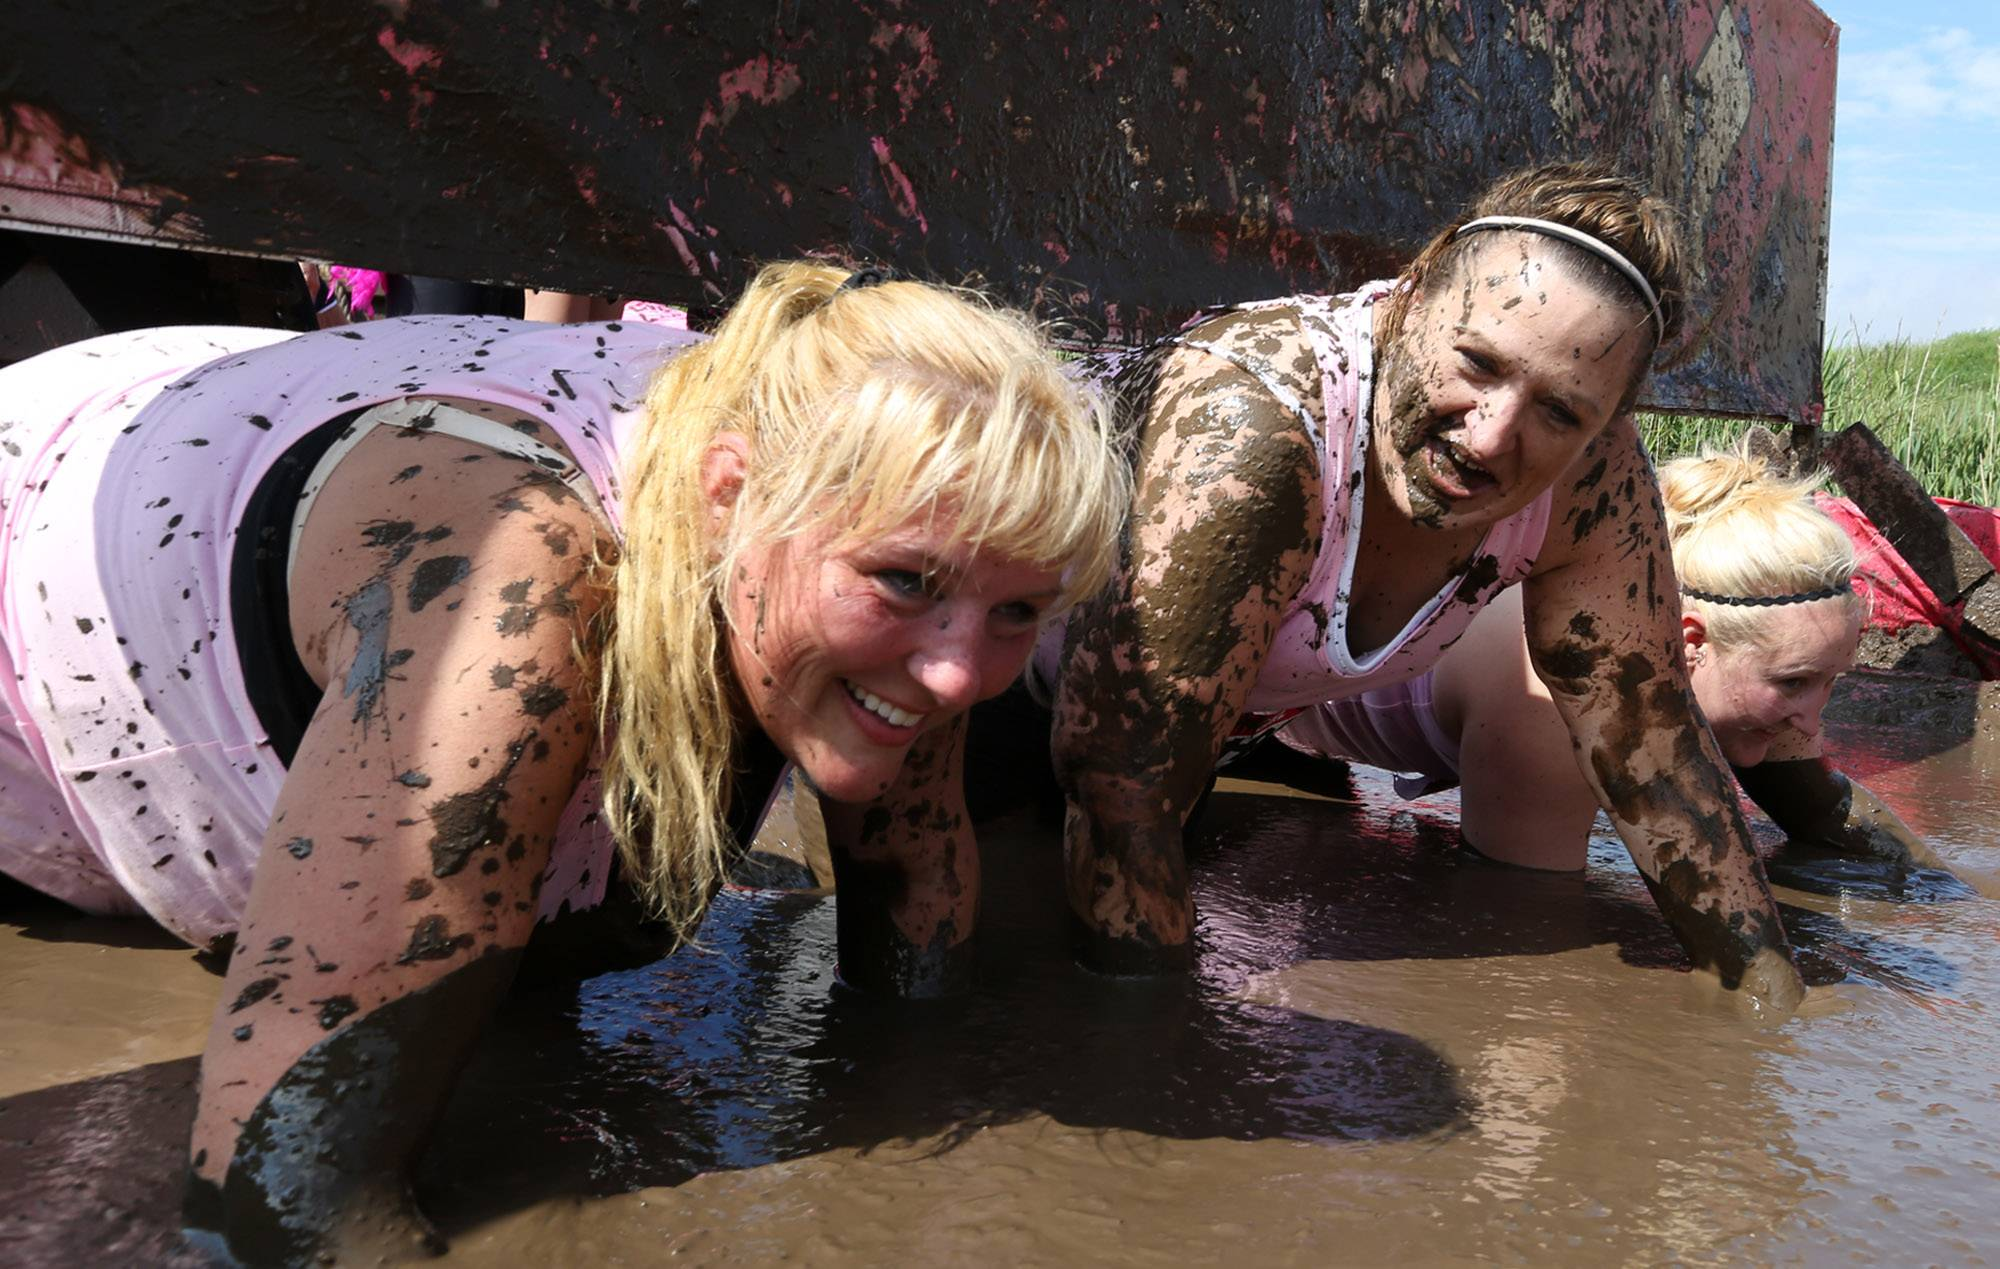 Jennifer Elkins of Ingleside, with Fight Dirty for Donna K, left, crawls under an obstacle and through muddy water with team members during the Dirty Girl Mud Run Saturday at the Lake County Fairgrounds in Grayslake.